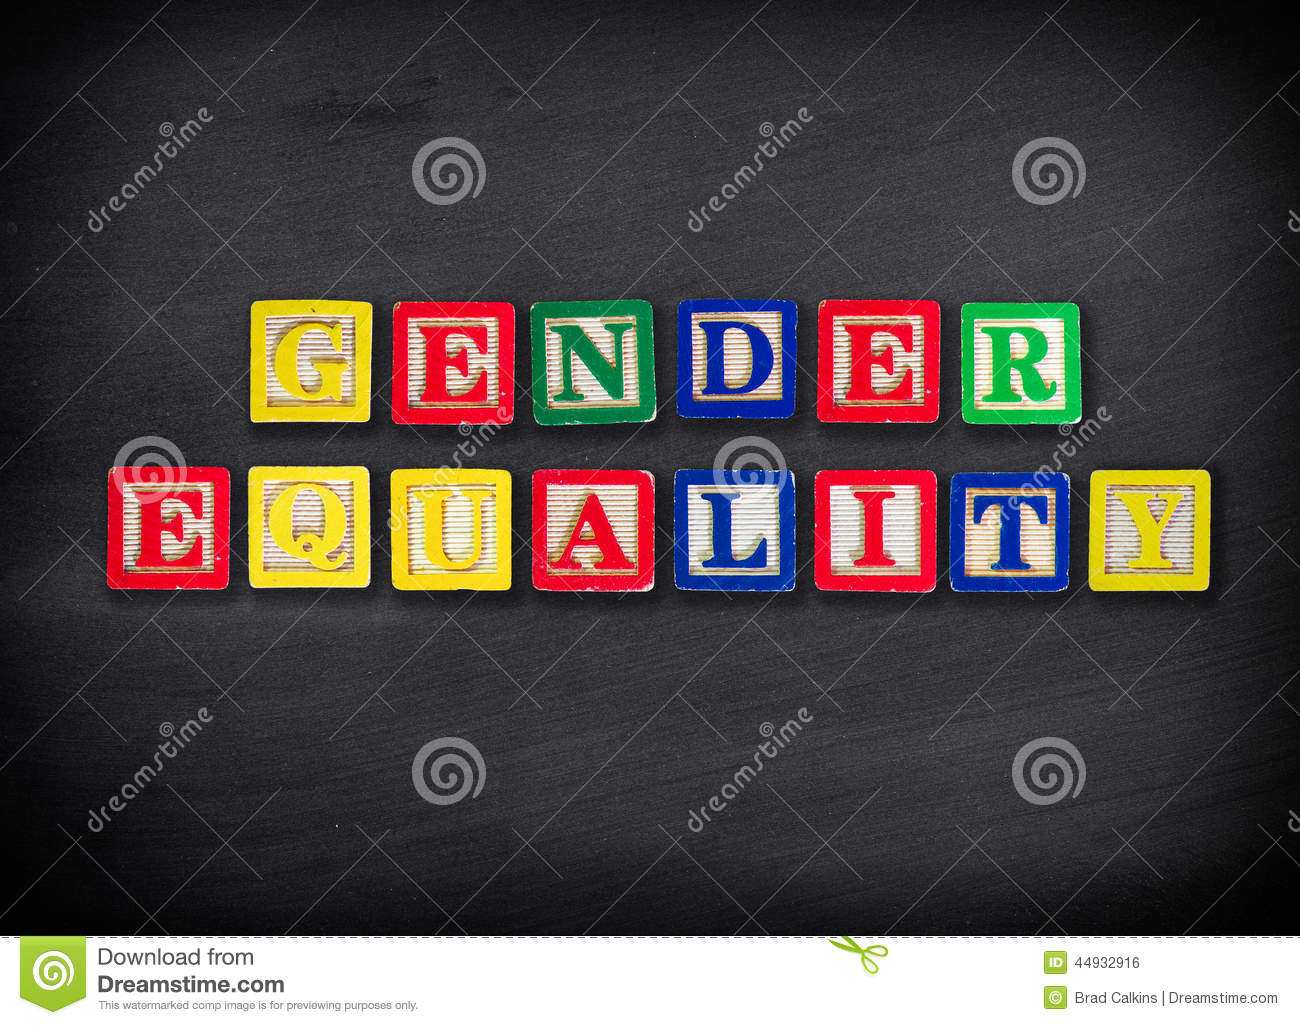 The concept of a middle form of gender